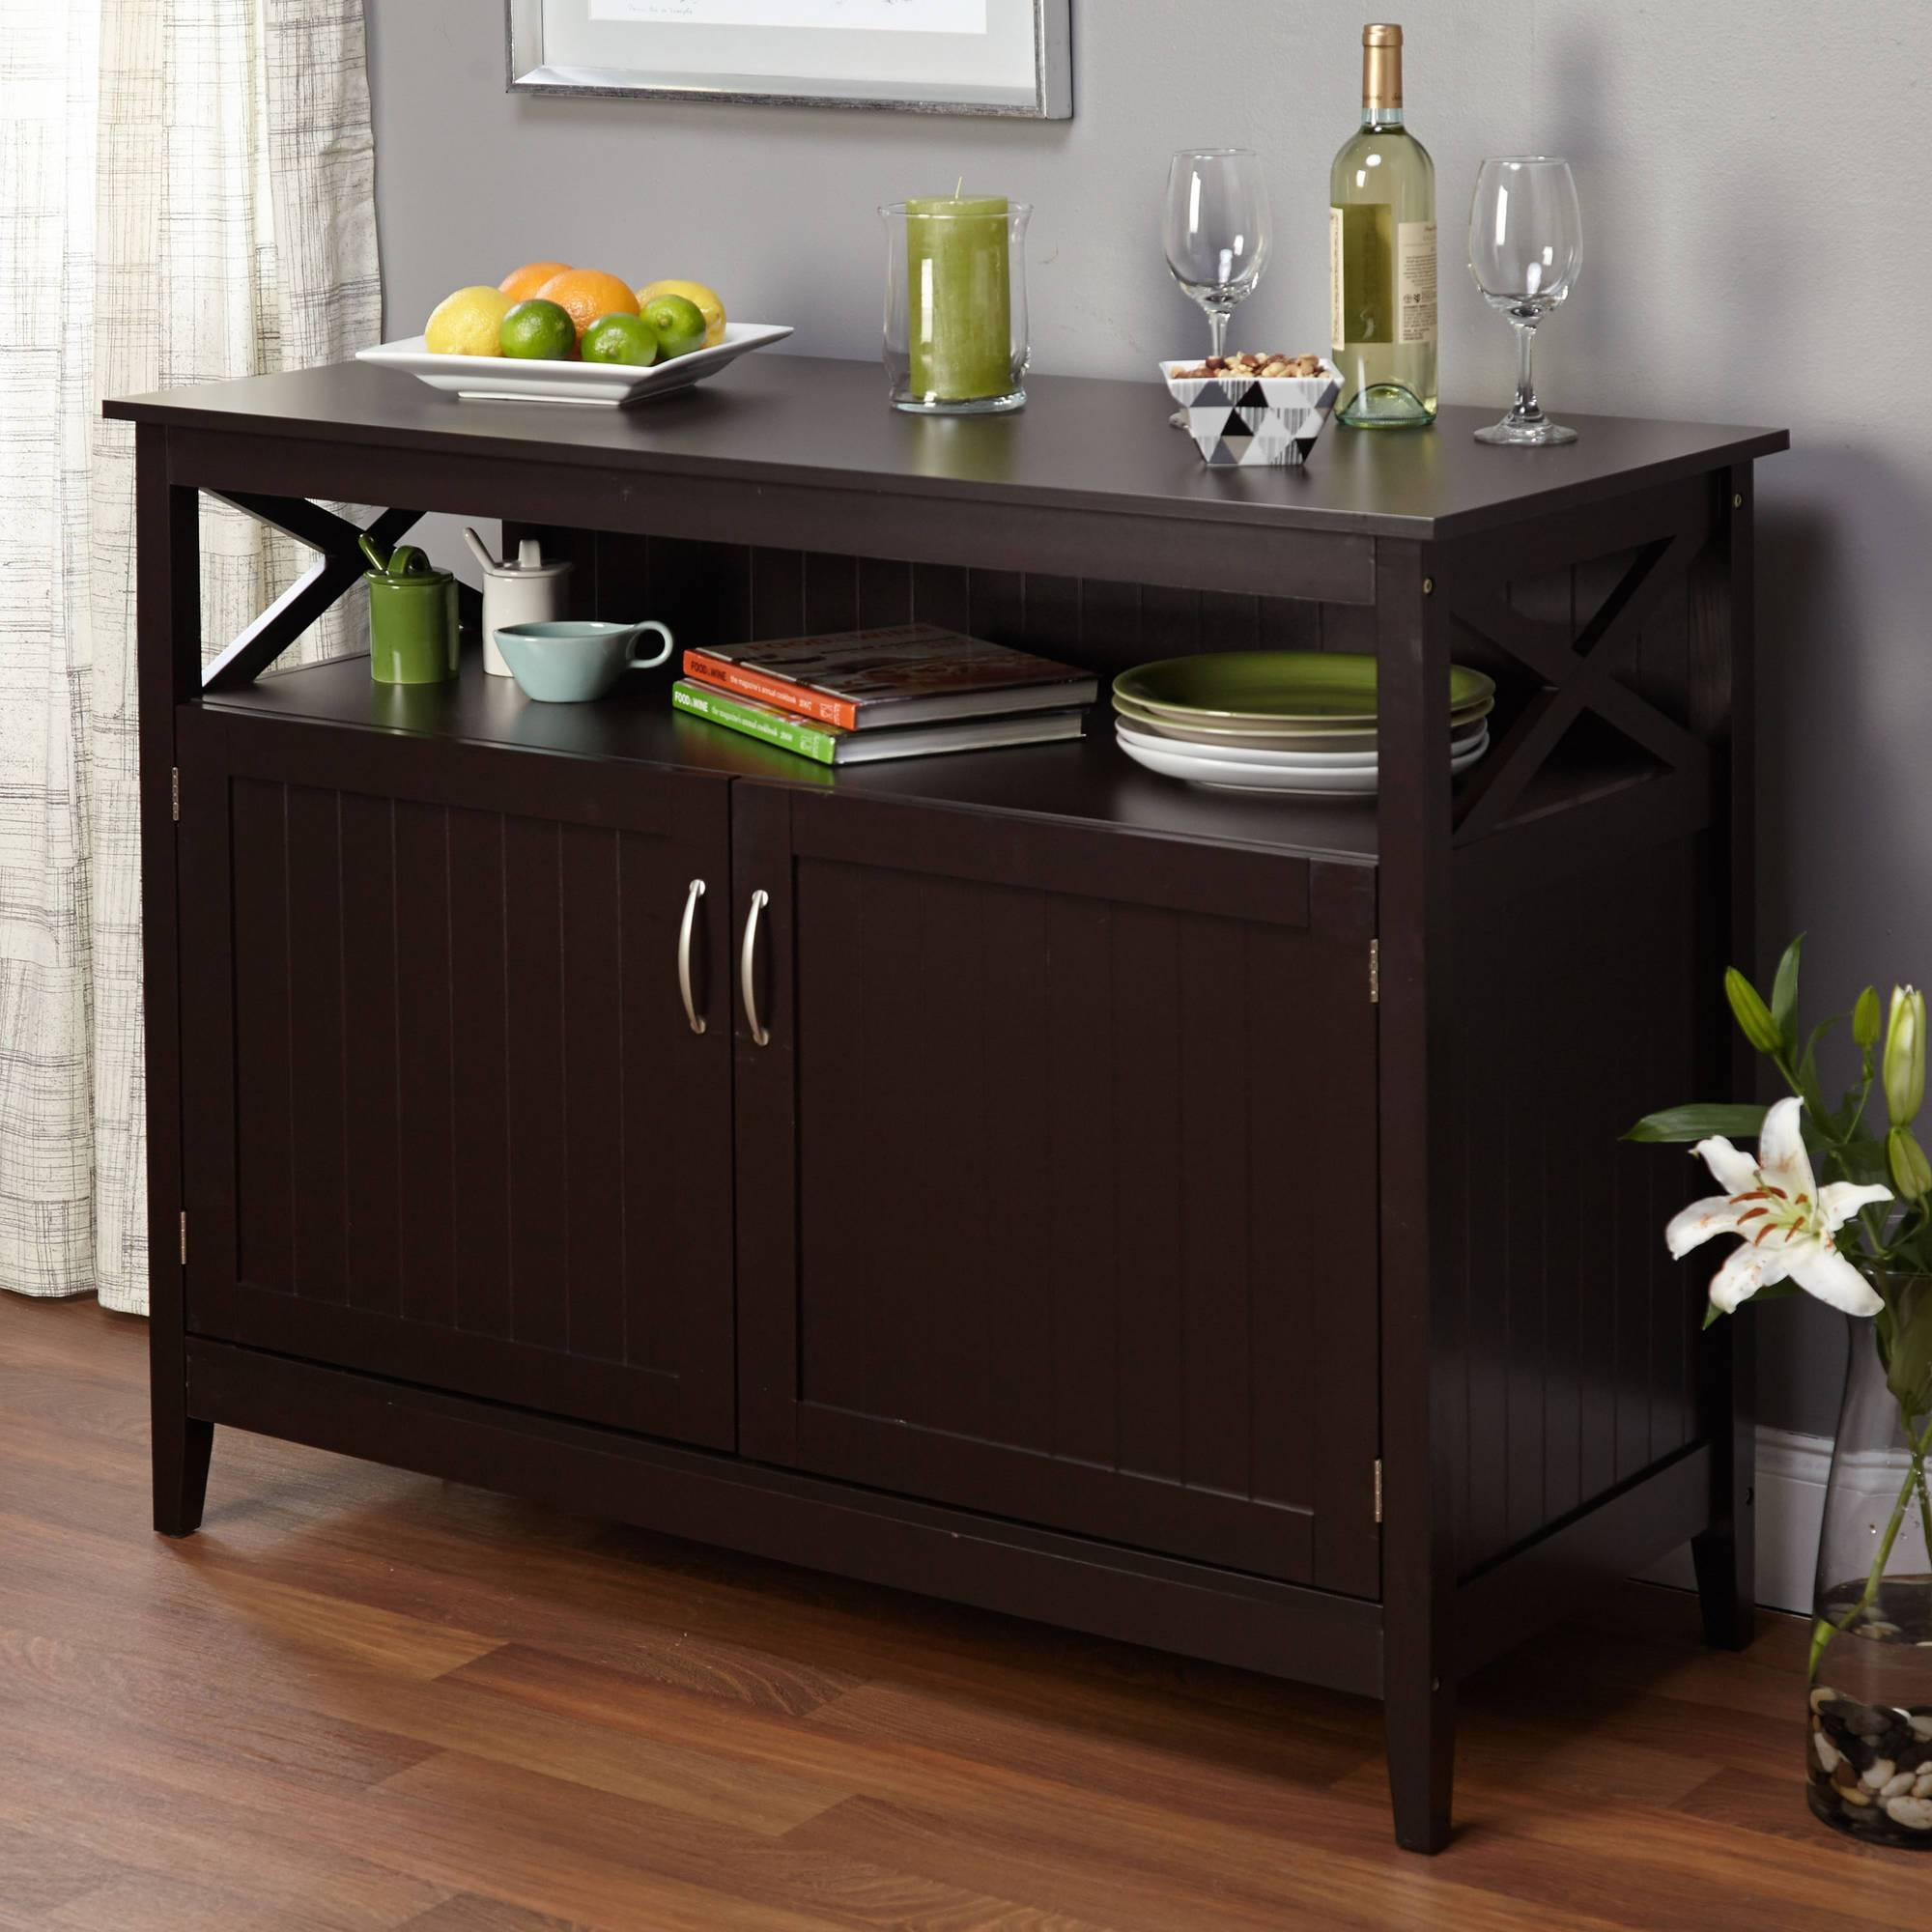 Black Sideboard With Glass Doors Images – Doors Design Ideas With Regard To Current Black Buffet Sideboards (#1 of 15)